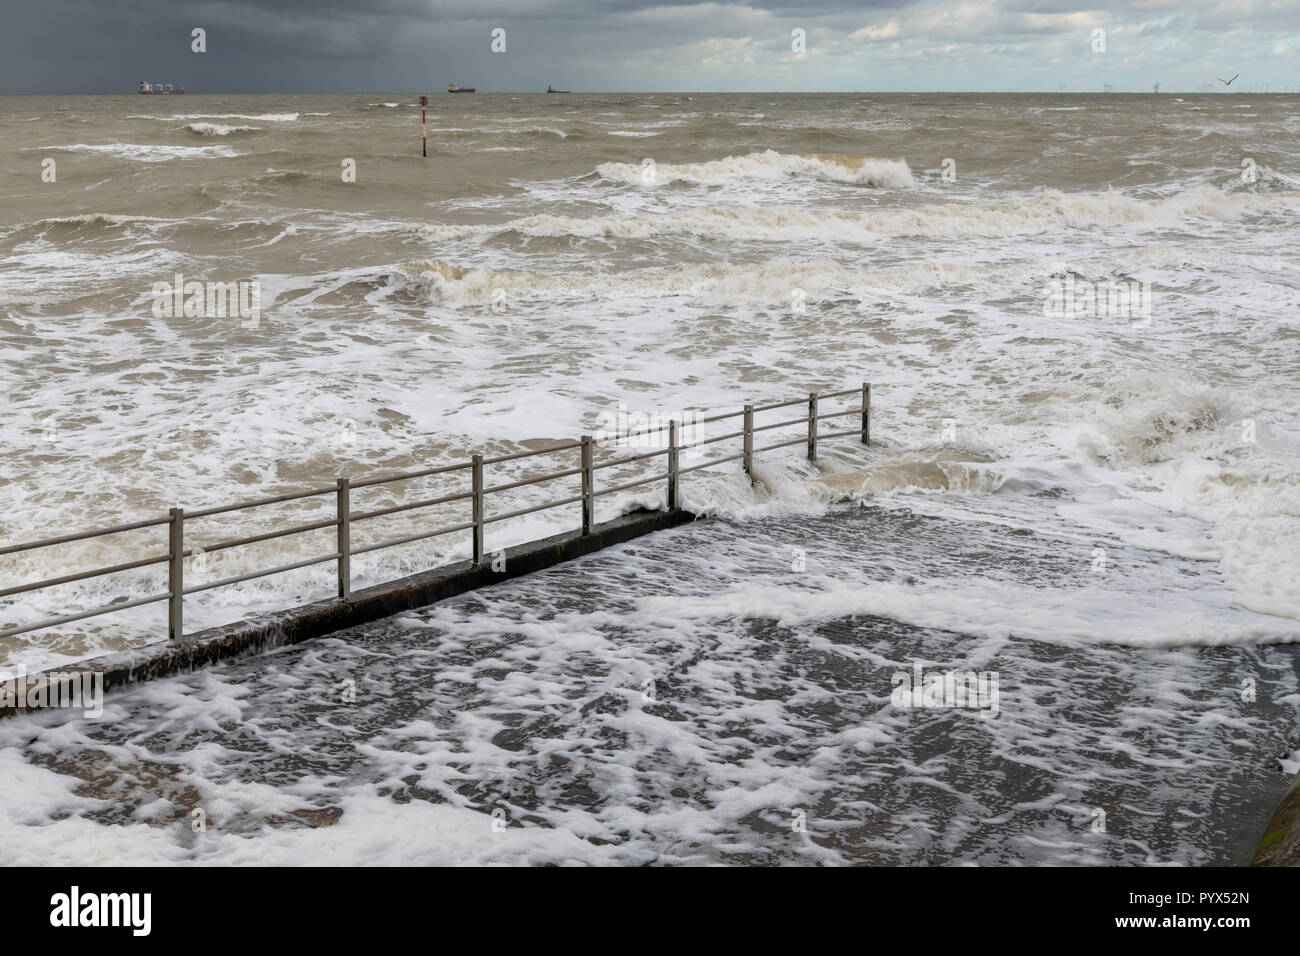 Margate jetty going down to the frightening rough sea. - Stock Image